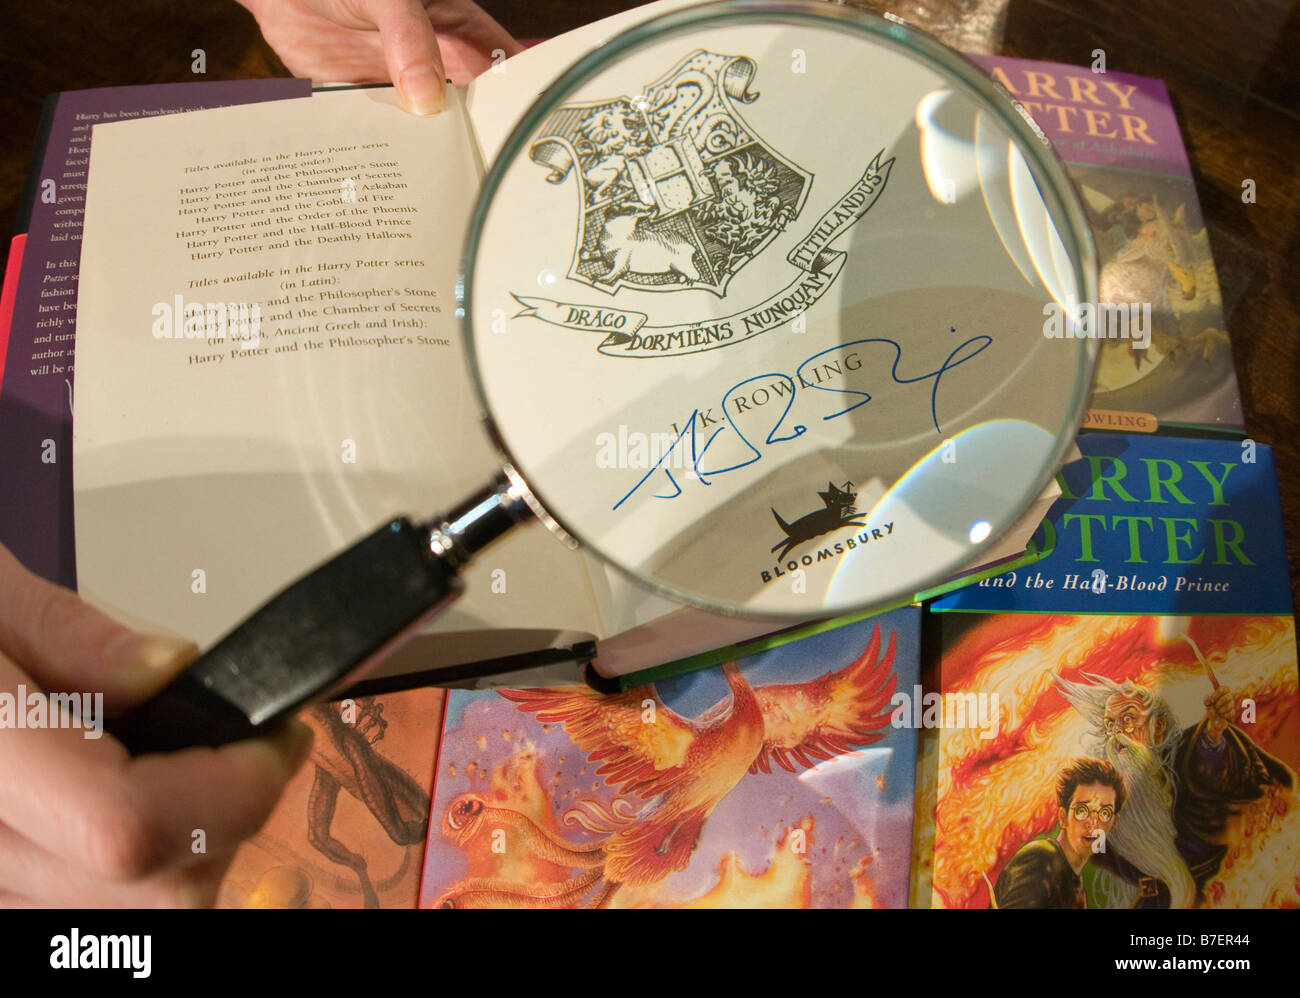 Autographed copy of Harry Potter novel part of a set donated by Author J.K. Rowling o an auction that will benefit - Stock Image